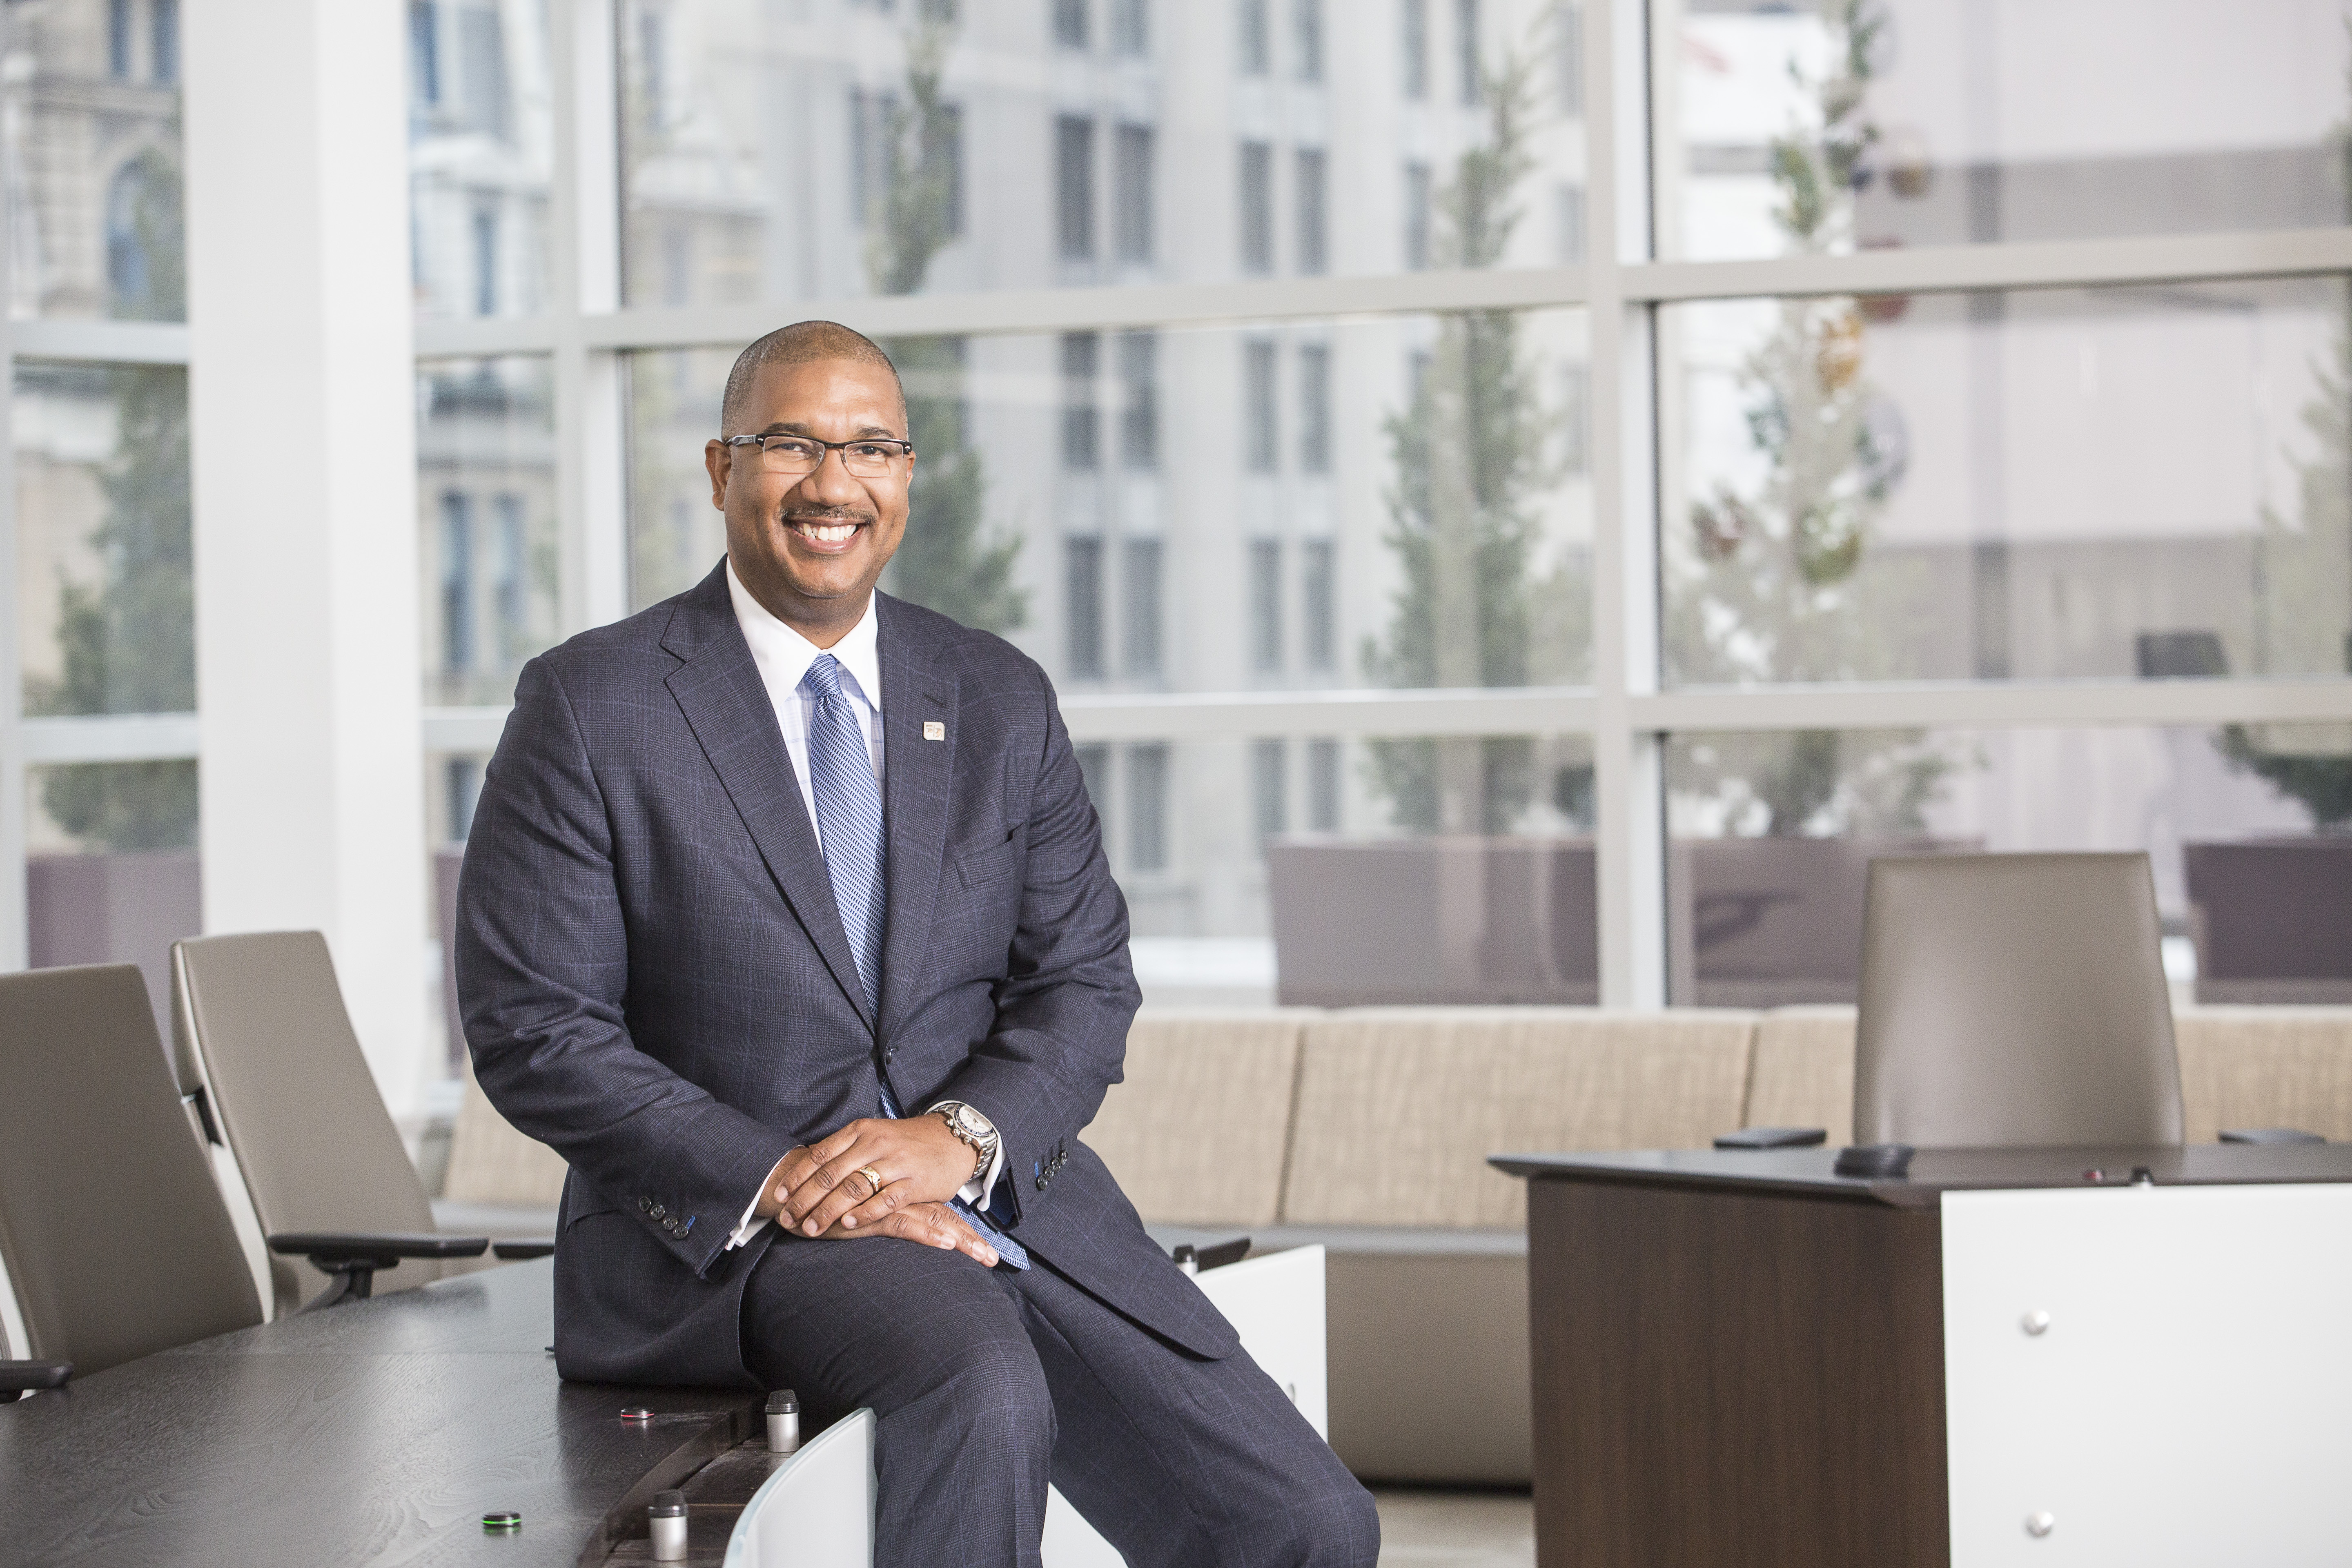 Kala Gibson, head of Business Banking for Fifth Third Bank (Photo: Business Wire)